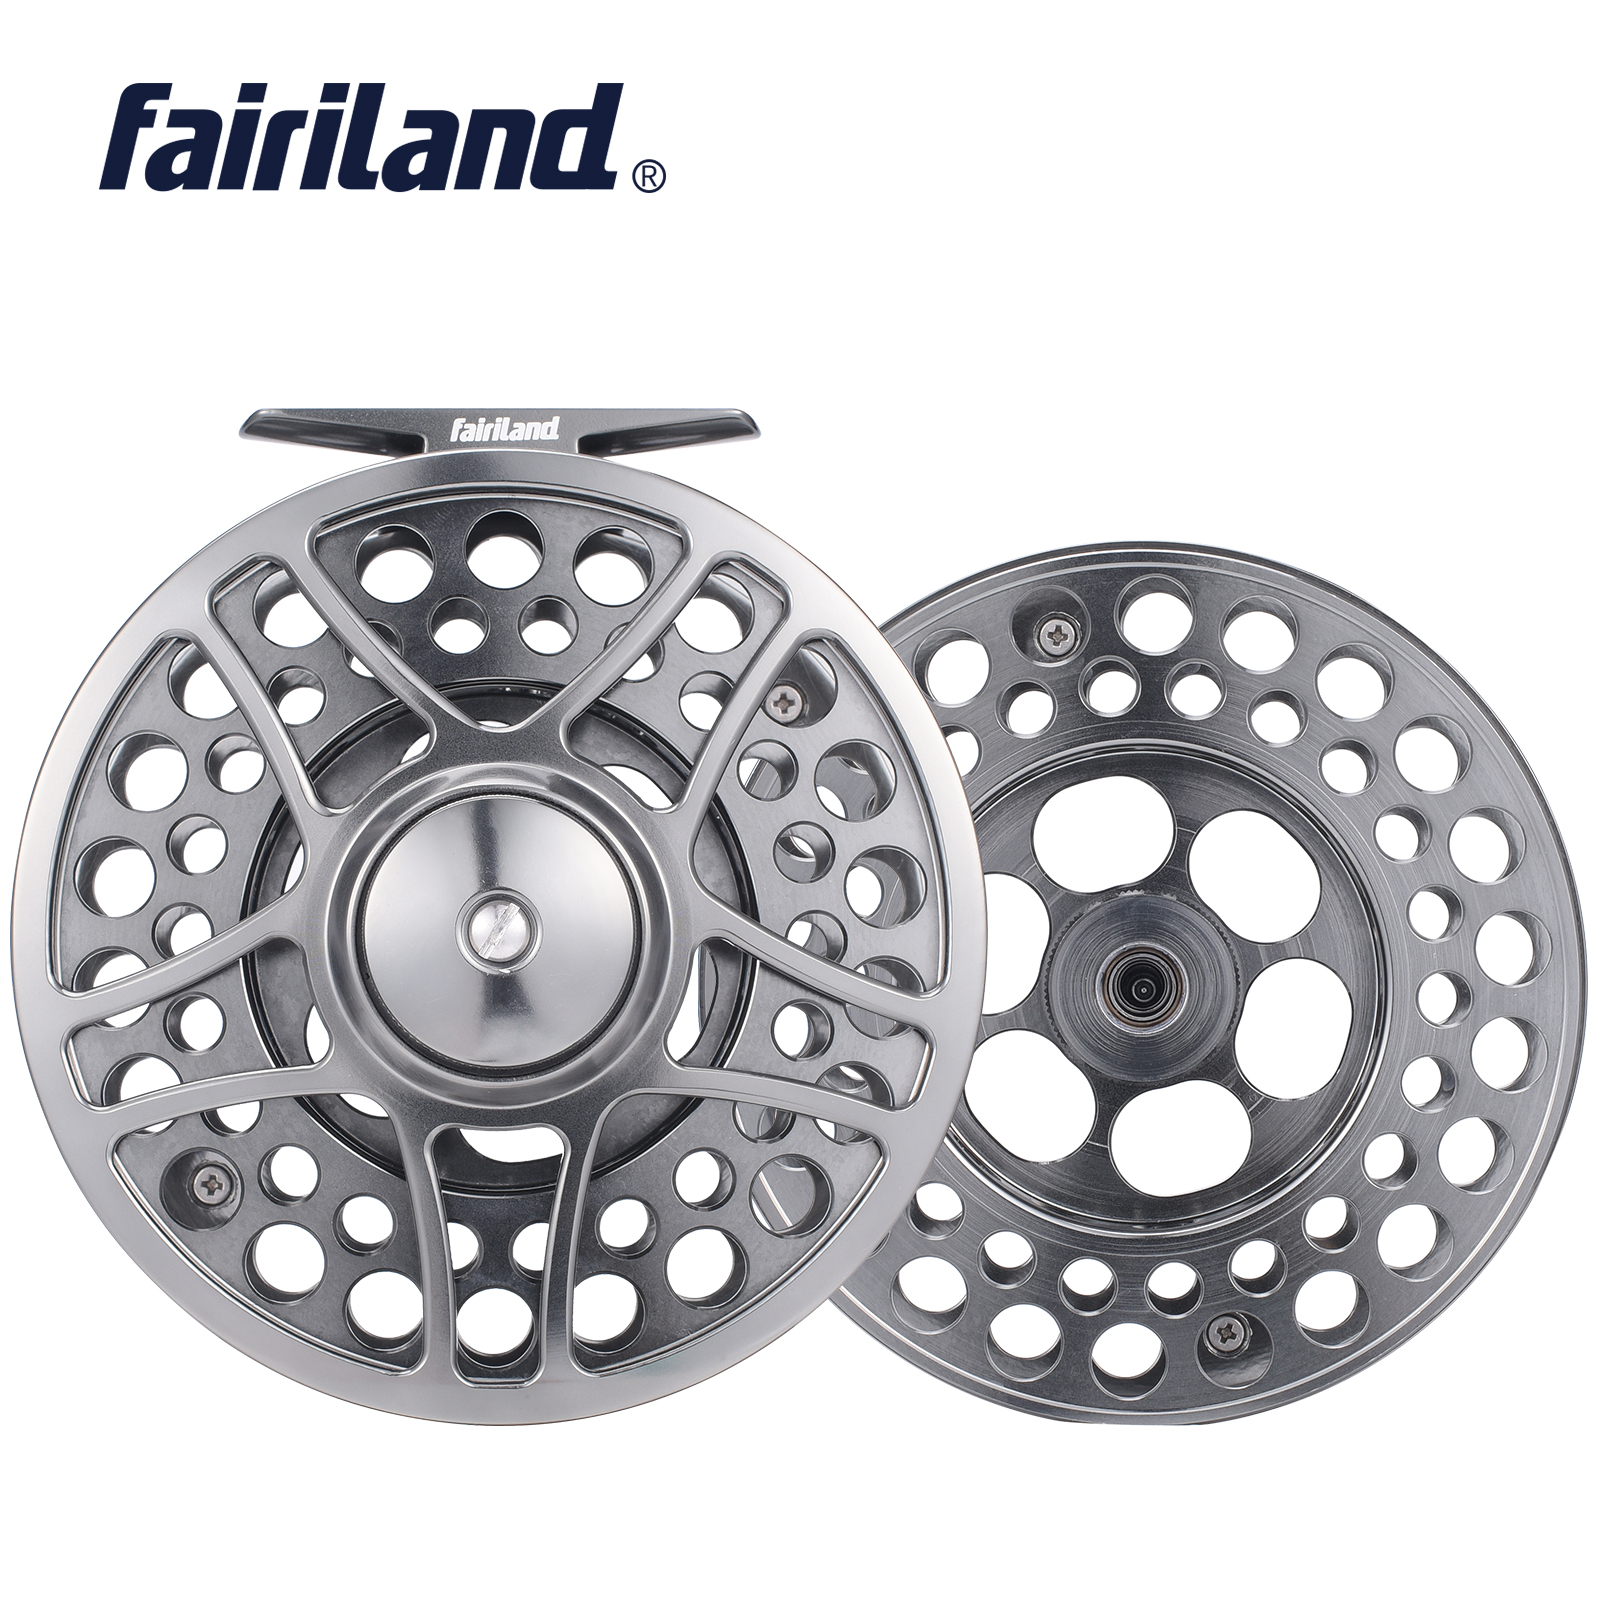 110mm 4 33 fly reel with SPARE SPOOL 9 11 3BB PRECISION MACHINED fly fishing reel